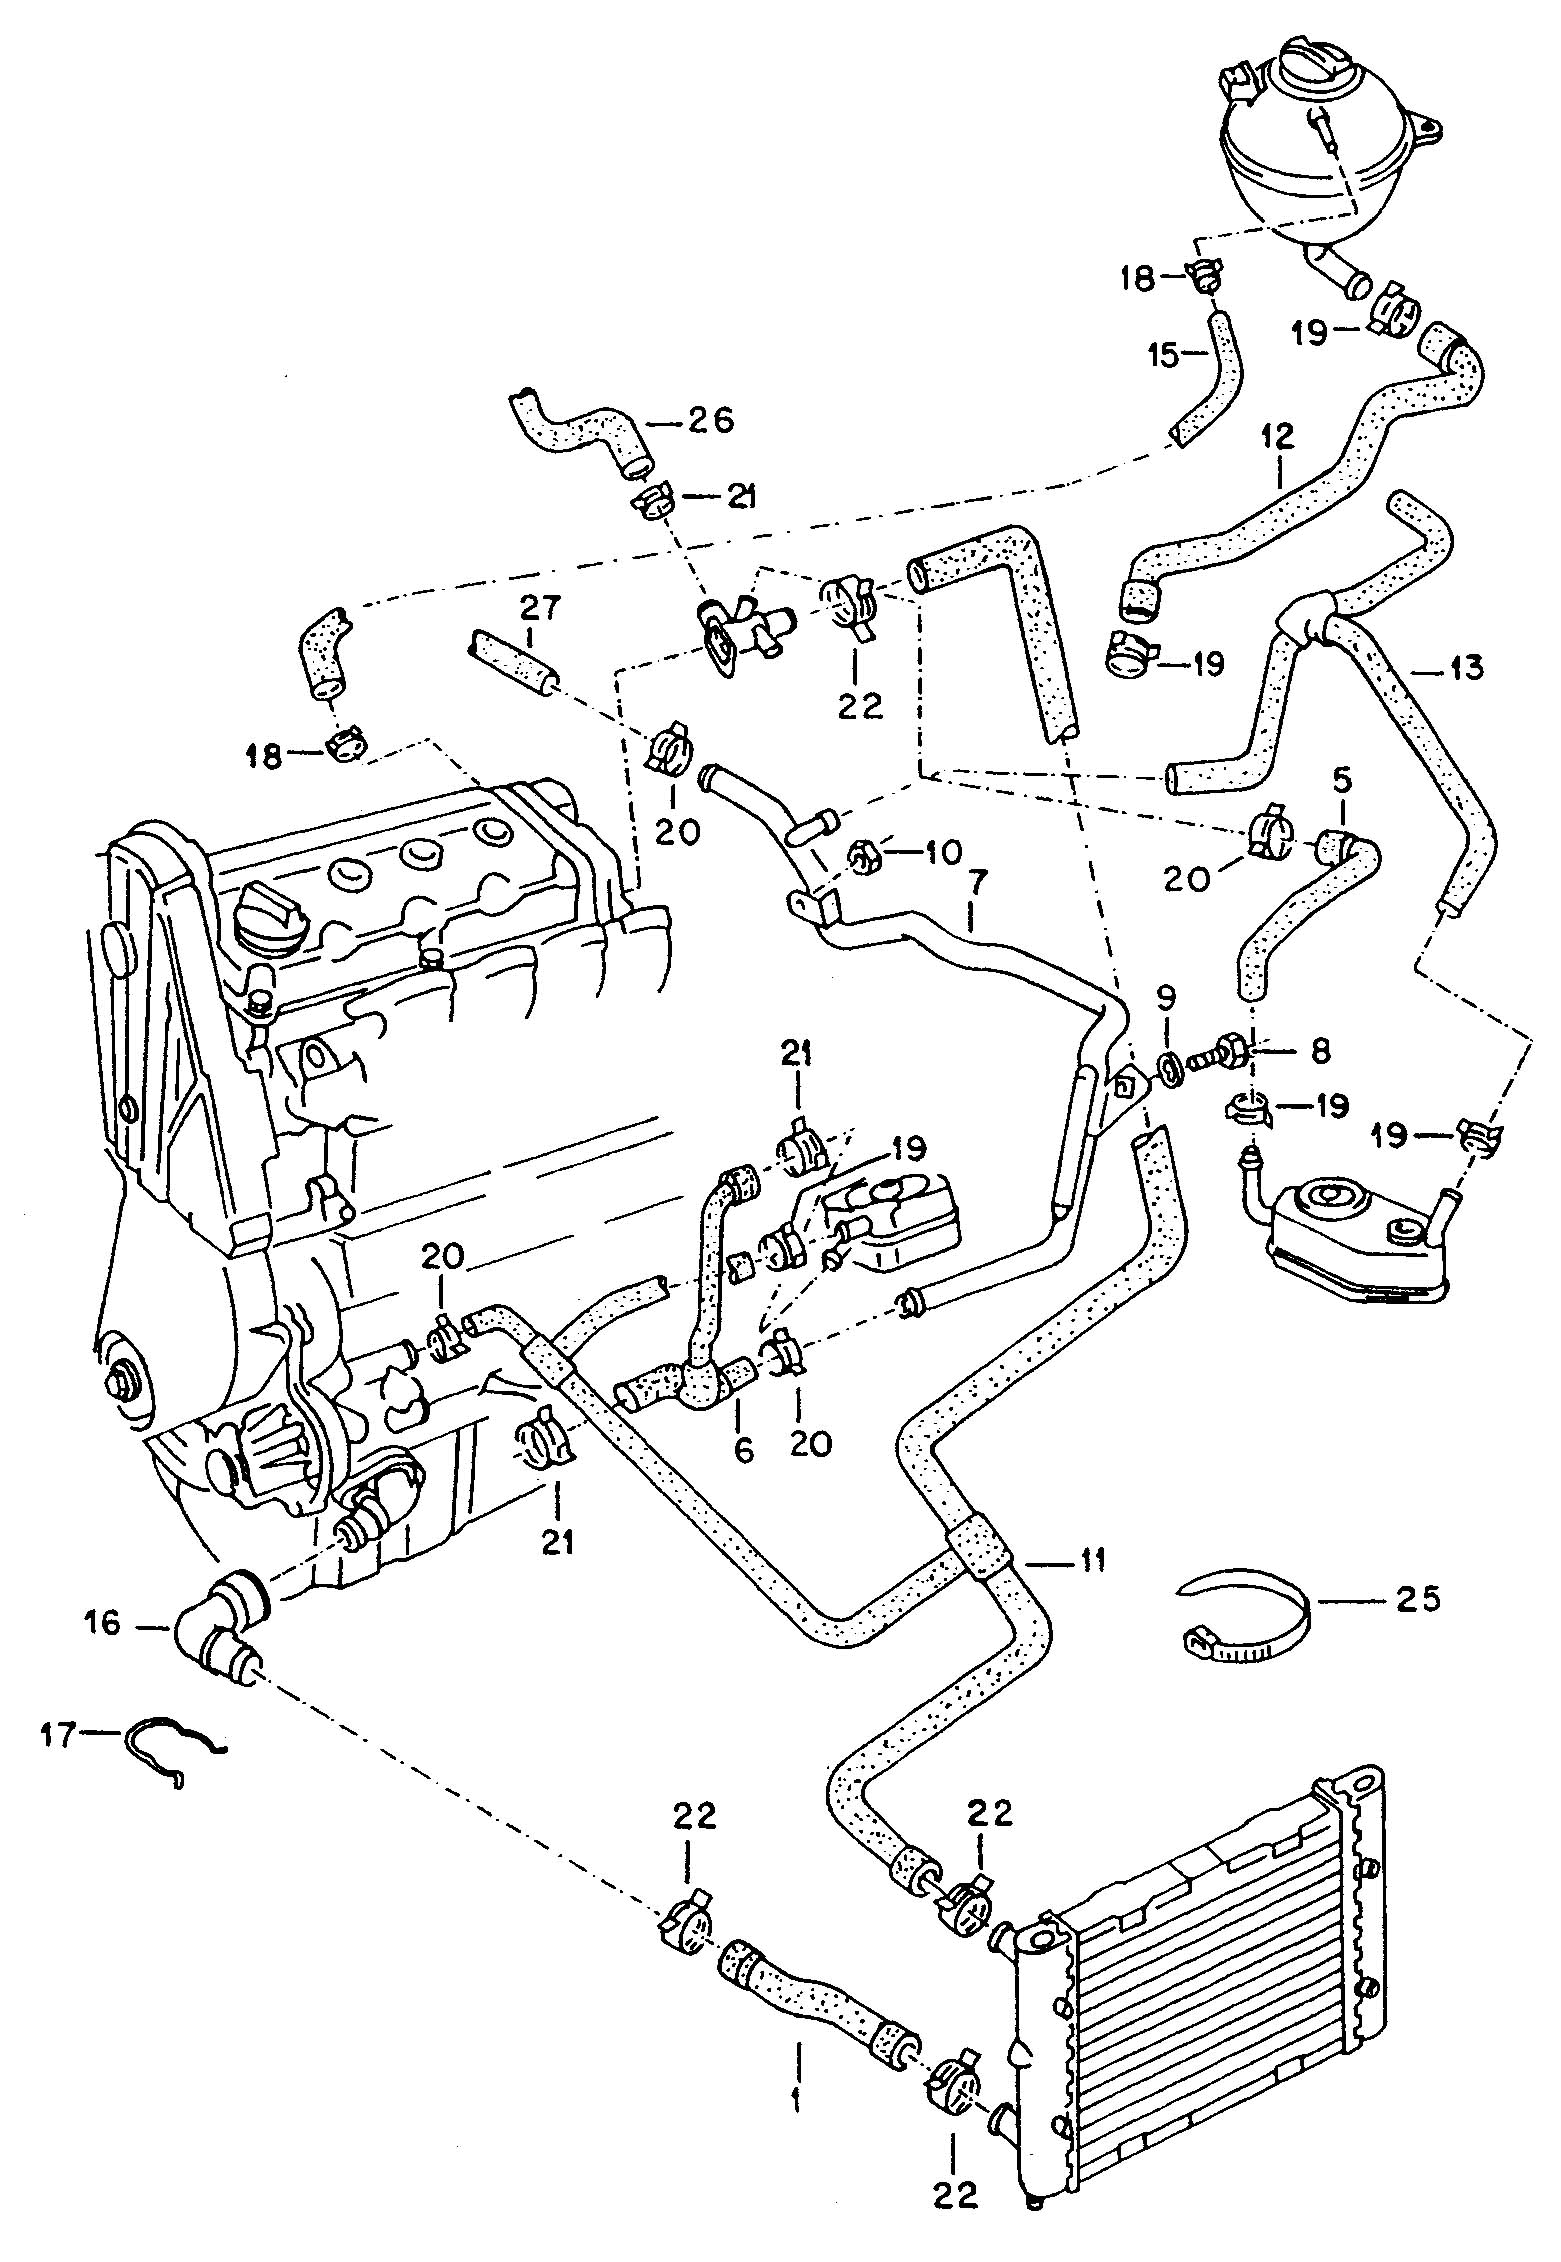 Vr6 Engine Diagram Cooling System Not Lossing Wiring Jetta Diesel Volkswagen Detailed Rh 15 7 Ocotillo Paysage Com